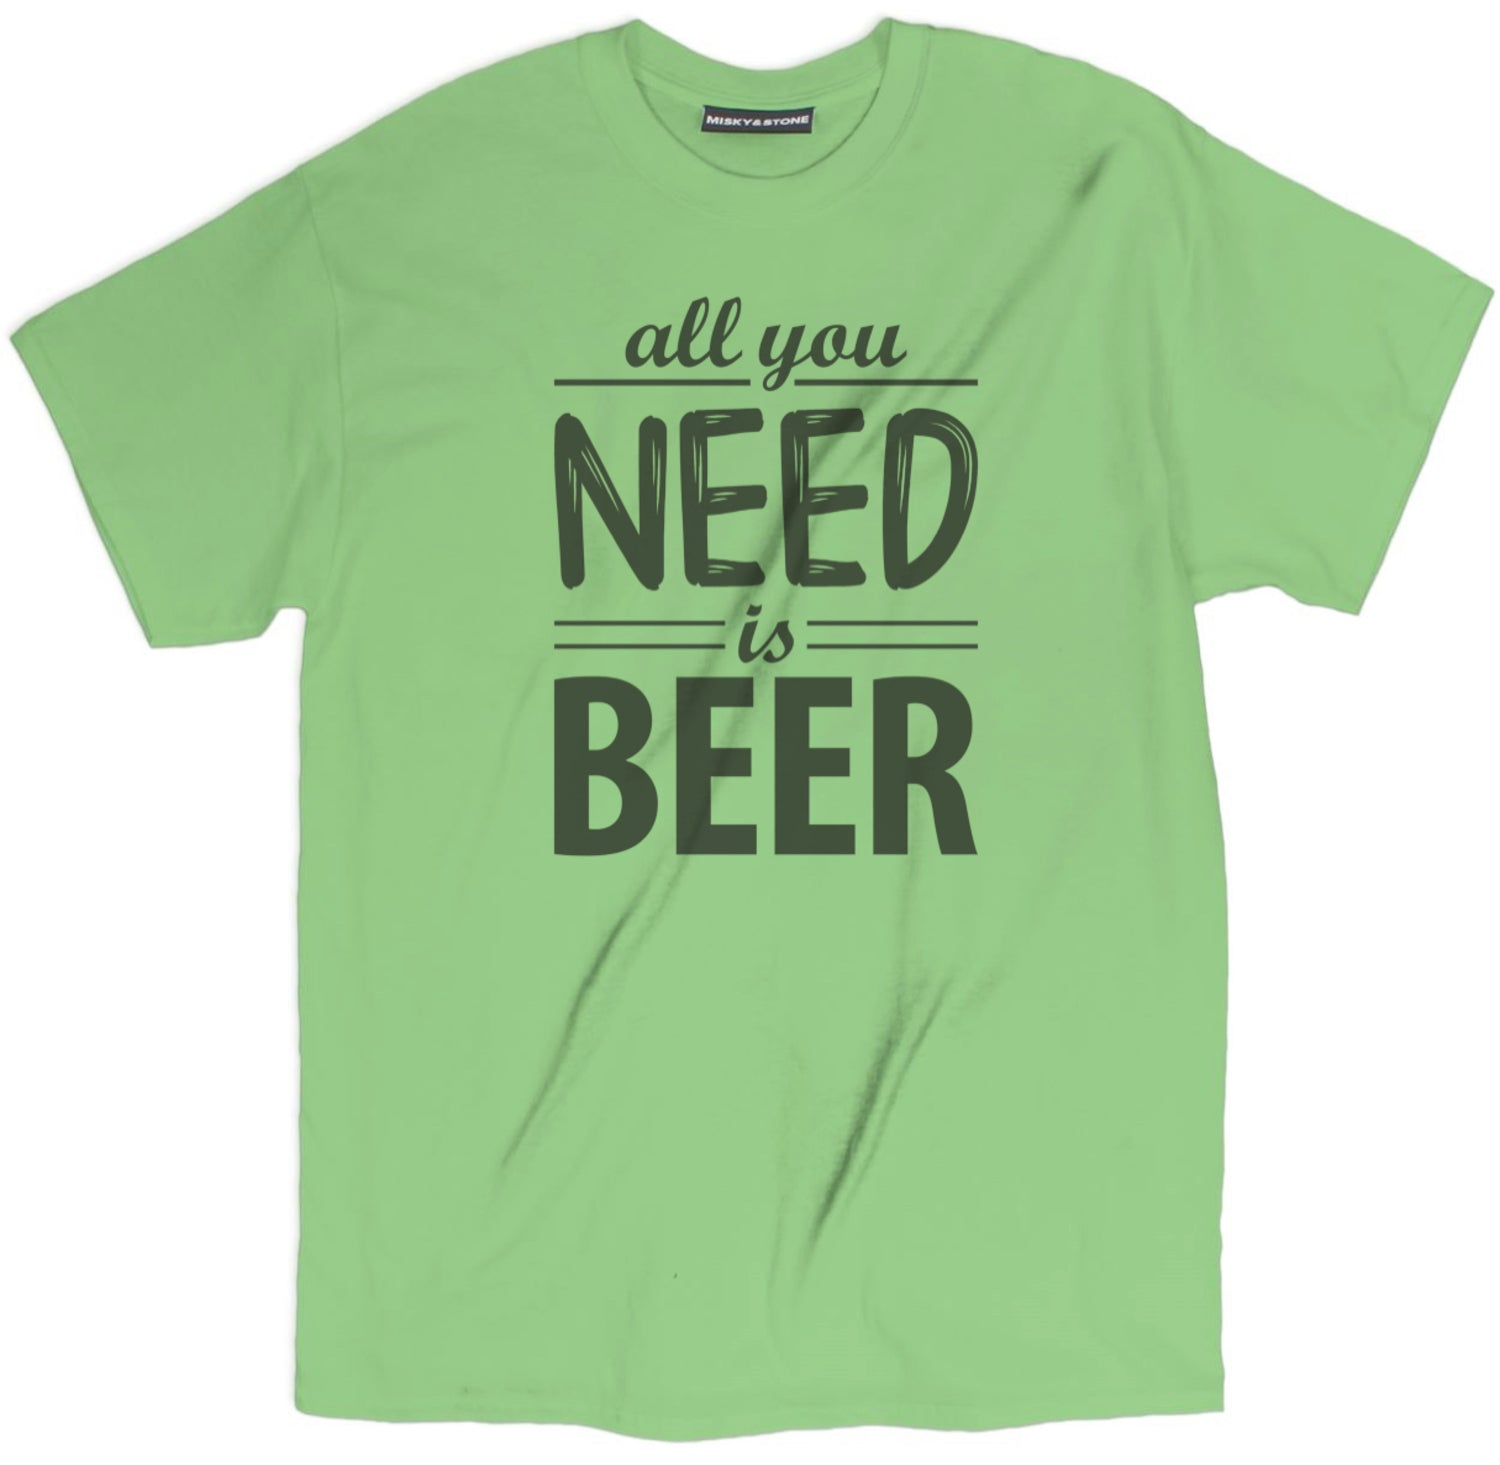 all you need is beer t shirt, beer shirts, funny beer shirts, beer tees, beer tee shirts, funny beer t shirts, drinking shirts, alcohol shirts, funny drinking shirts,